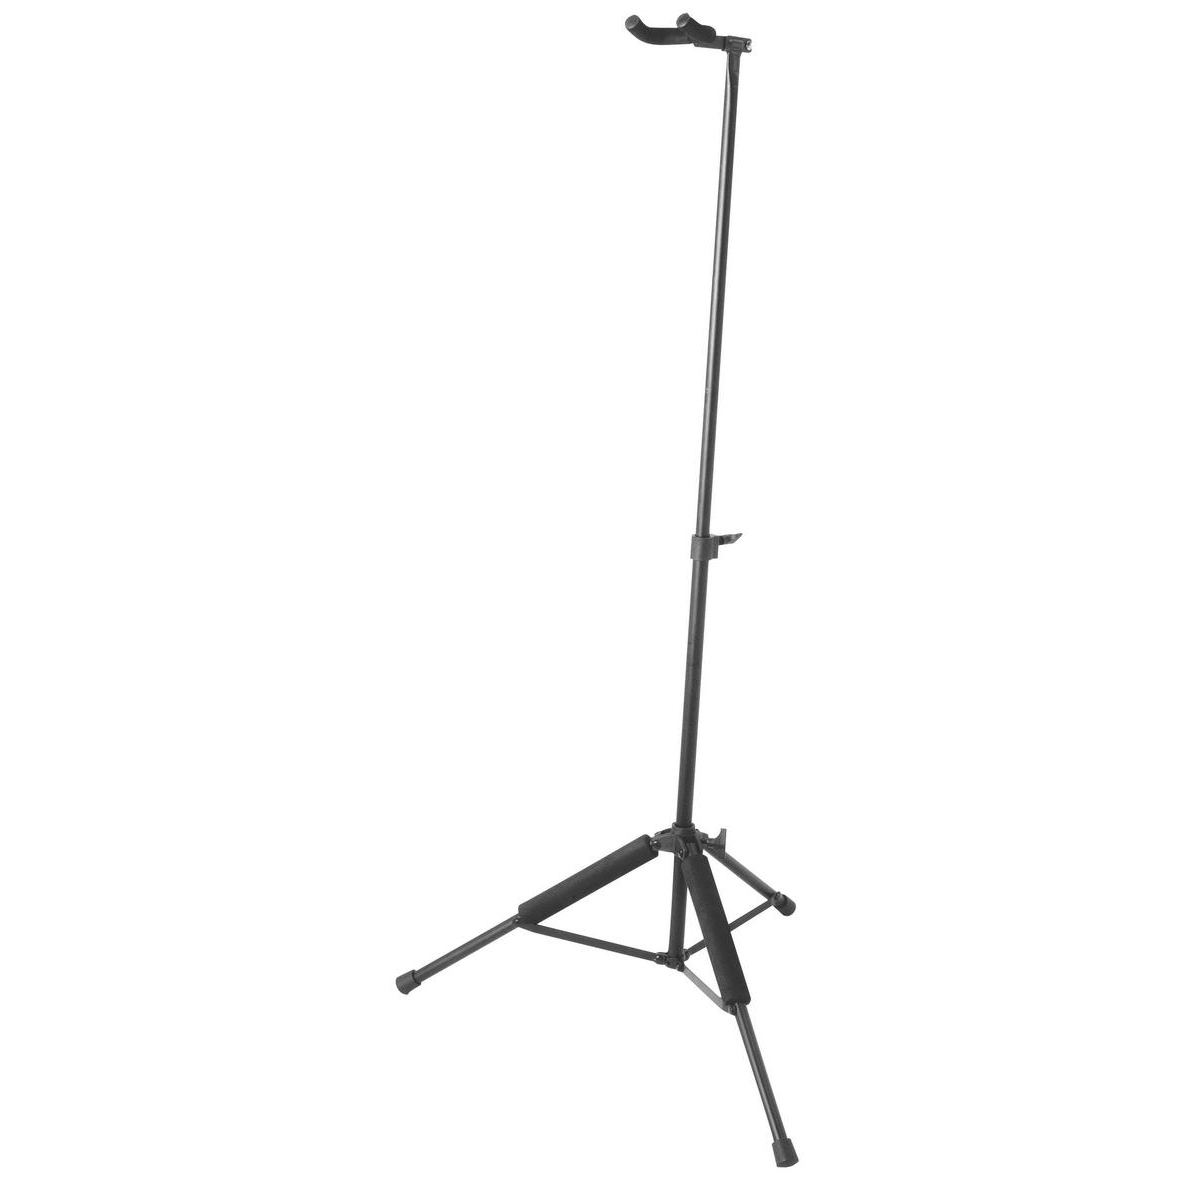 Onstage GS7155 single hanging stand